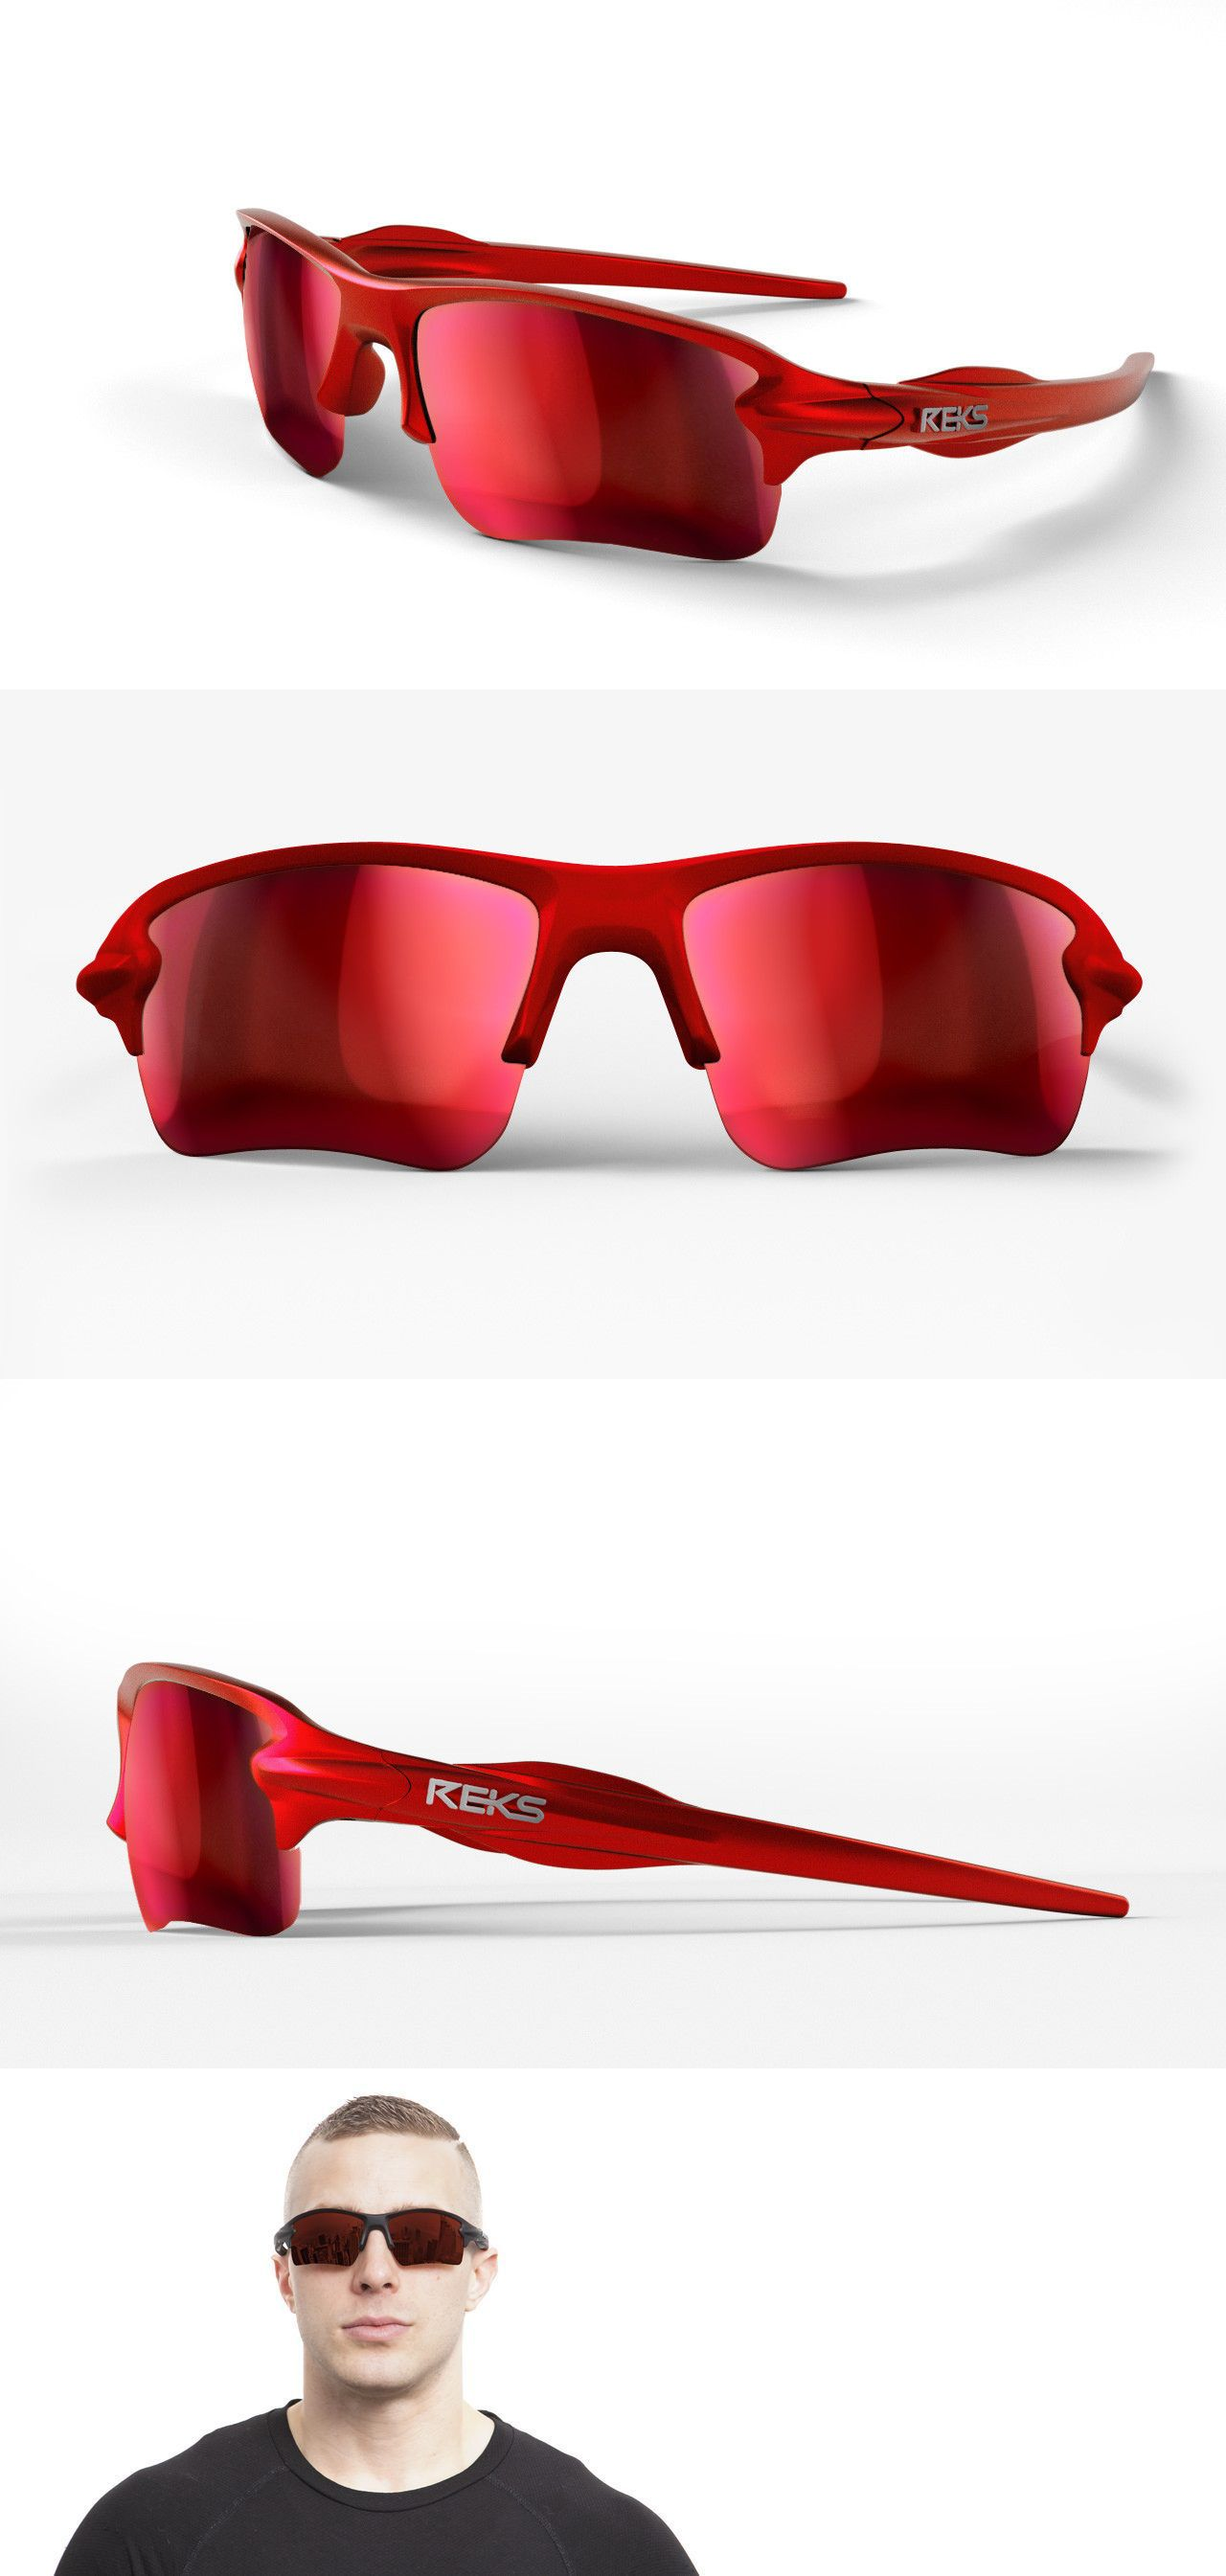 7ae5e2a517c495 Accessories 179245: New Reks Unbreakable Sling Blade Polarized Sunglasses  Red Mirror Anti Reflective -> BUY IT NOW ONLY: $25 on #eBay #accessories ...